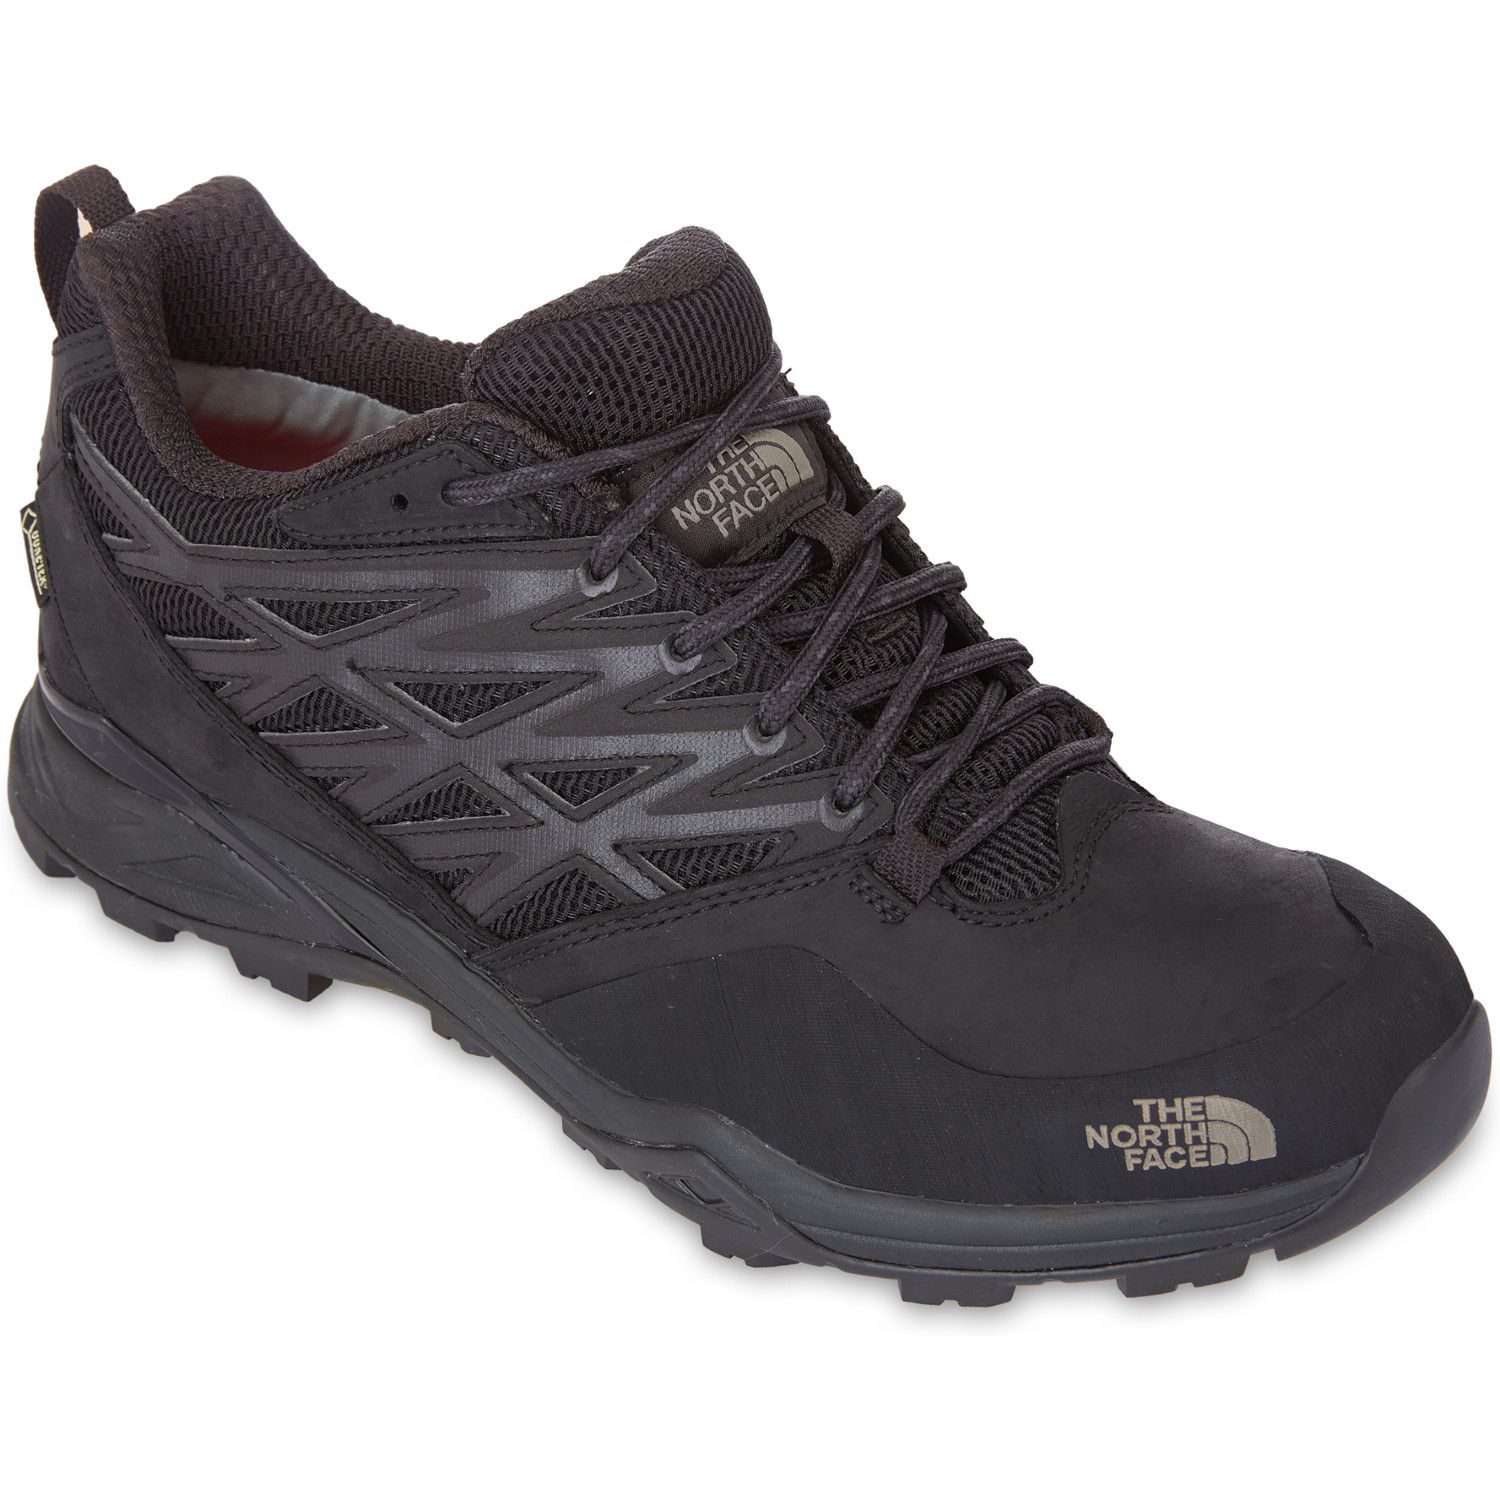 North Face Hedgehog Hike GTX Shoes from Fitness Footwear